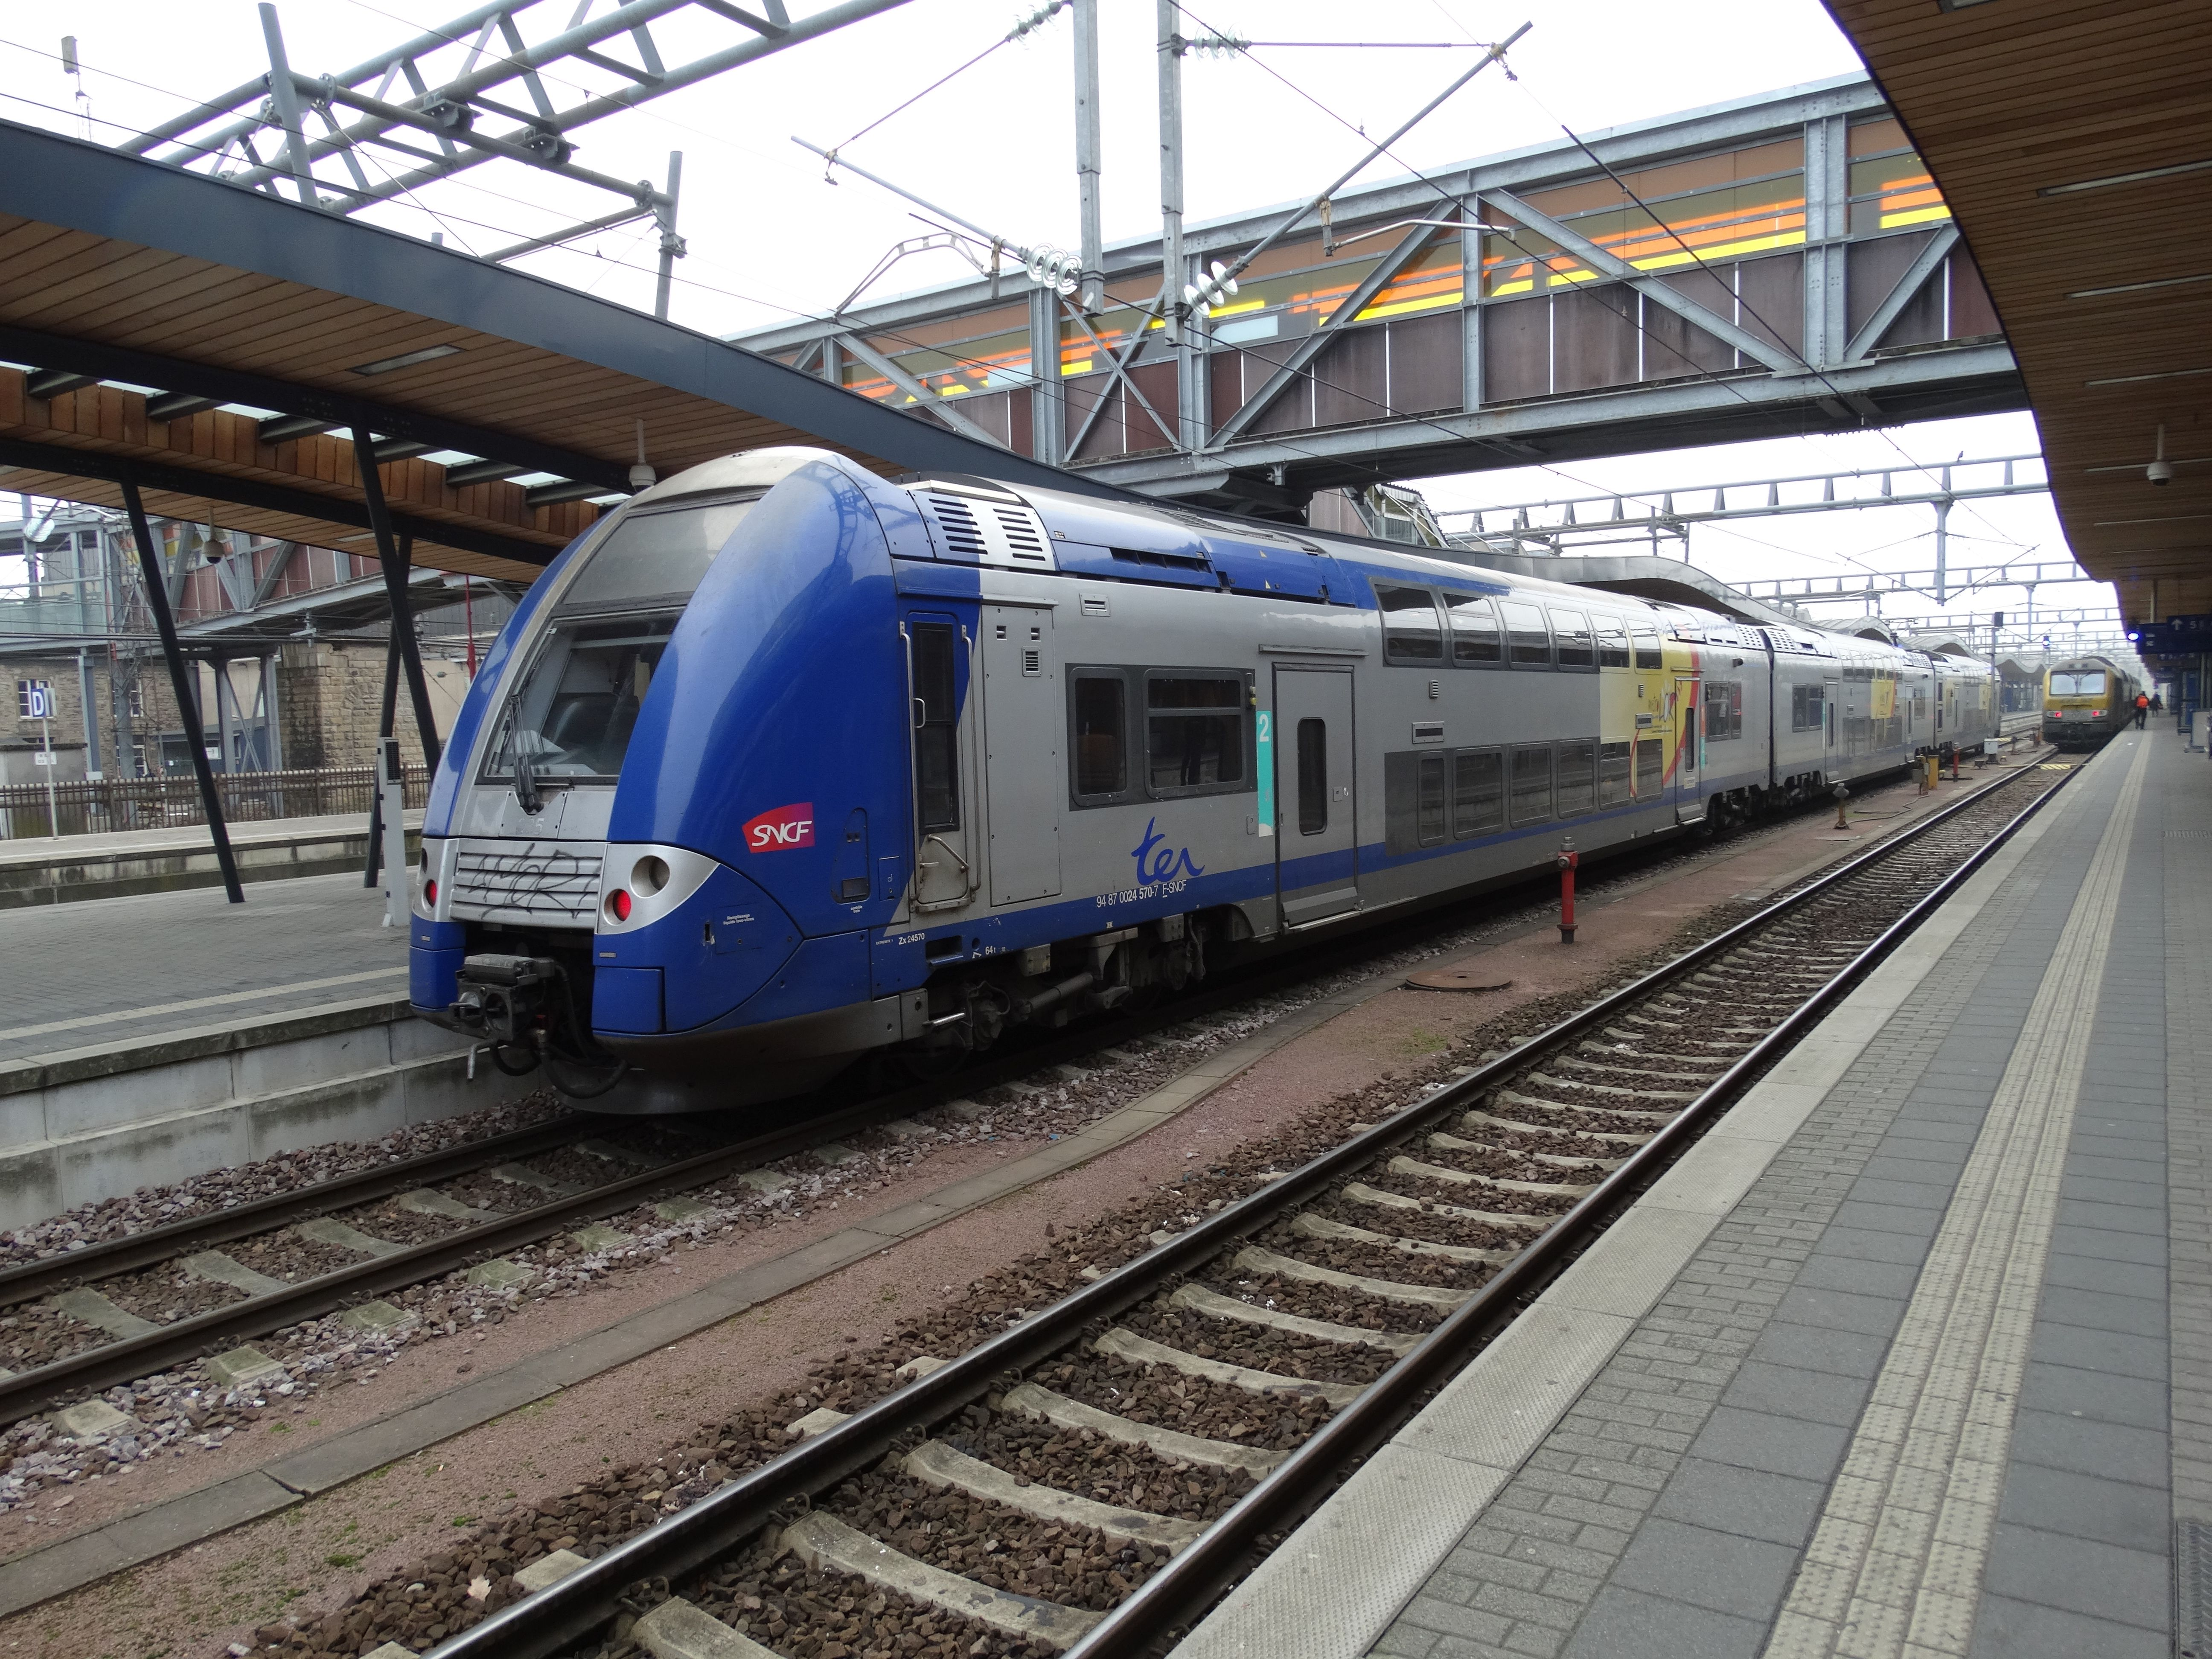 Railpics club - FUNET railway pictures archive - Luxembourg